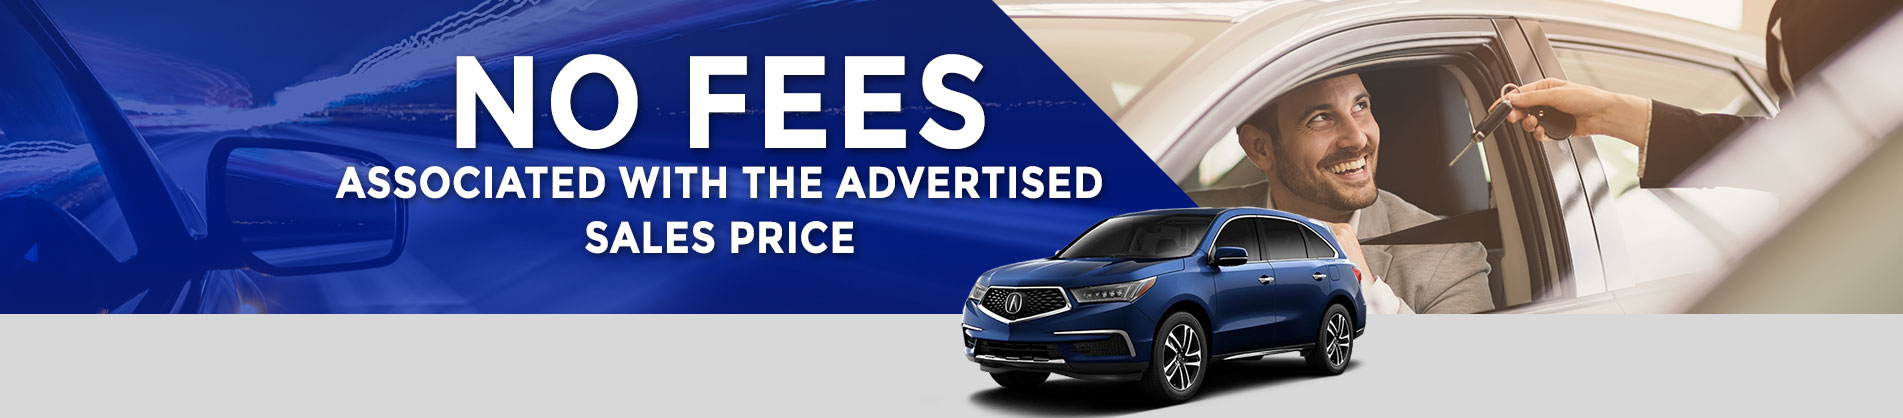 No fees associated with the advertised sales price